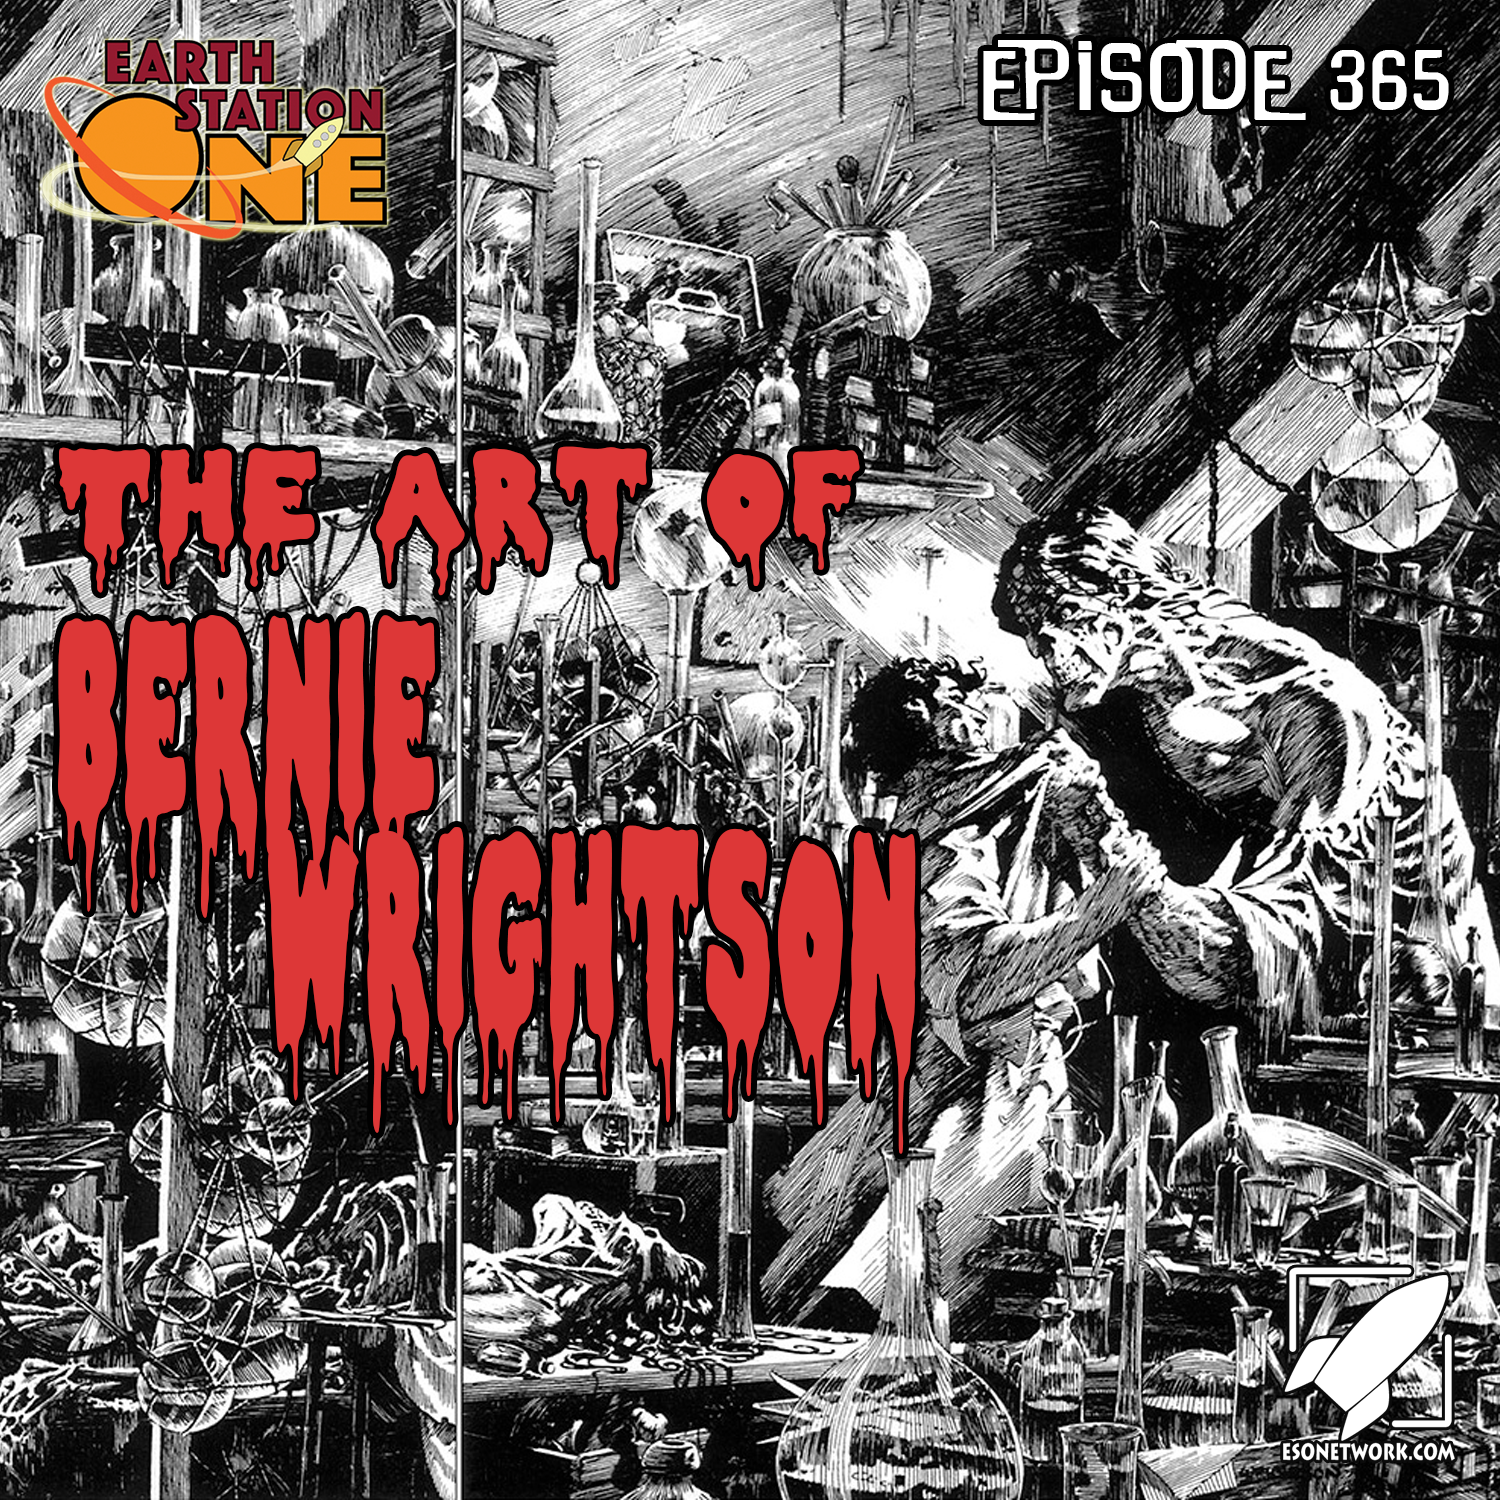 Earth Station One Podcast Ep 365 - Artist Spotlight on Bernie Wrightson